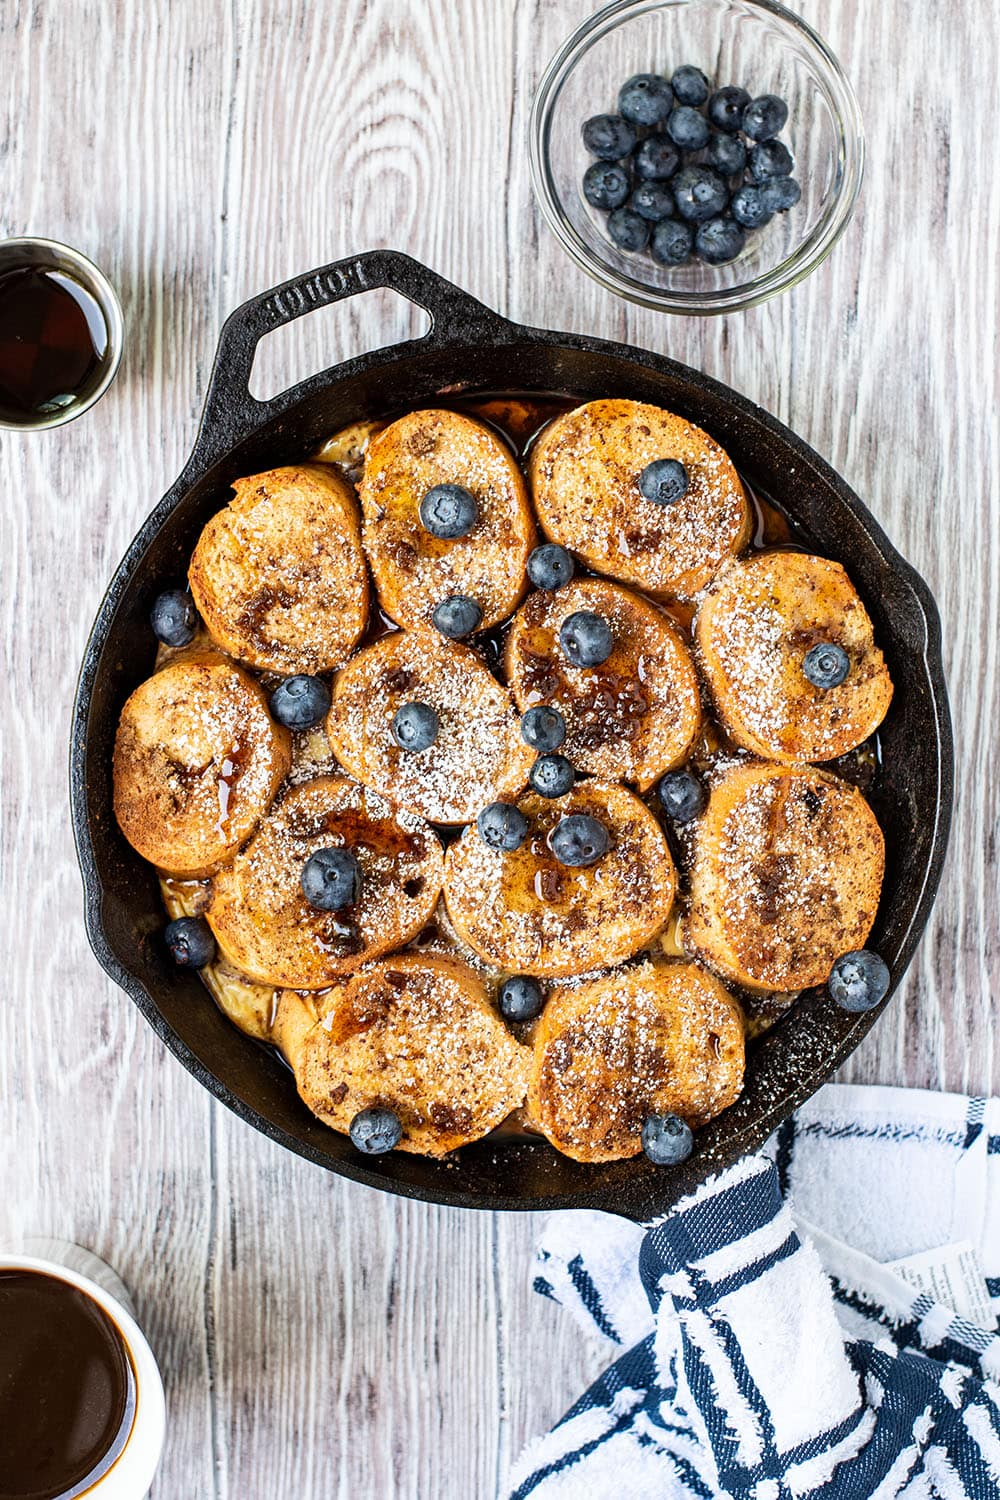 Fancy Baked French Toast recipe made with French bread